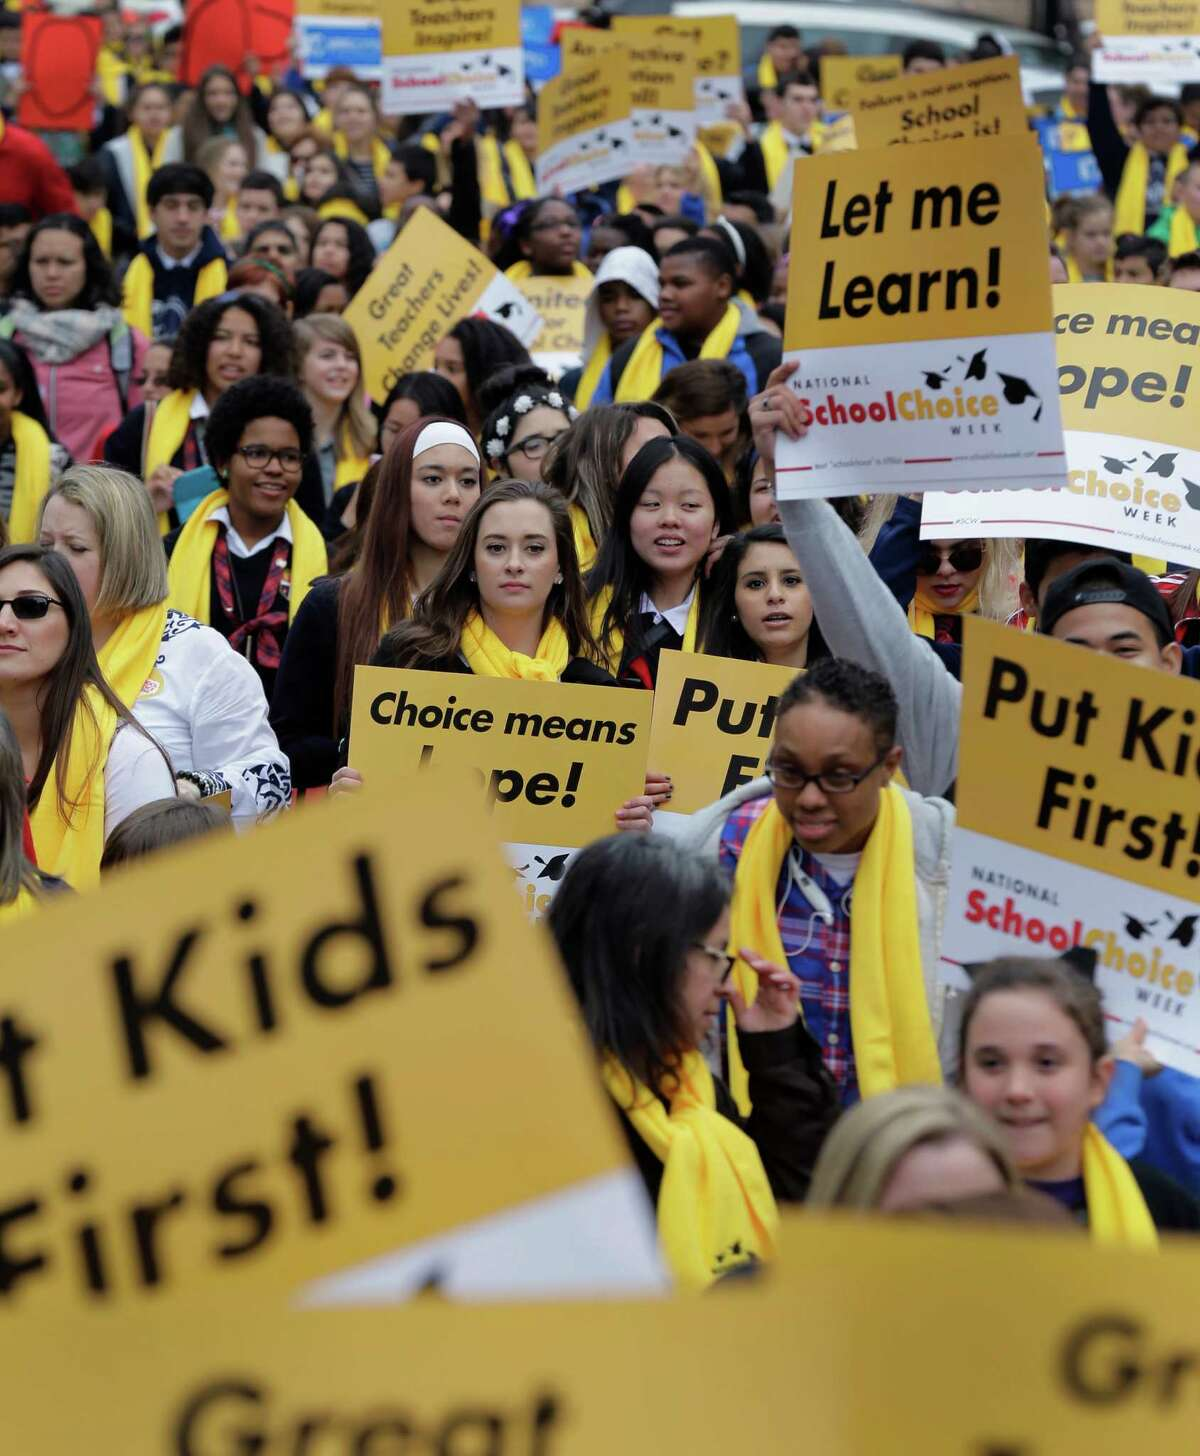 Students, teachers and supporters march on the grounds of the Texas Capitol Jan. 30, 2015, in Austin, Texas. School choice supporters called for expanding voucher programs and charter schools statewide. That call may be replaced in January in a new legislature with efforts to create education savings accounts.